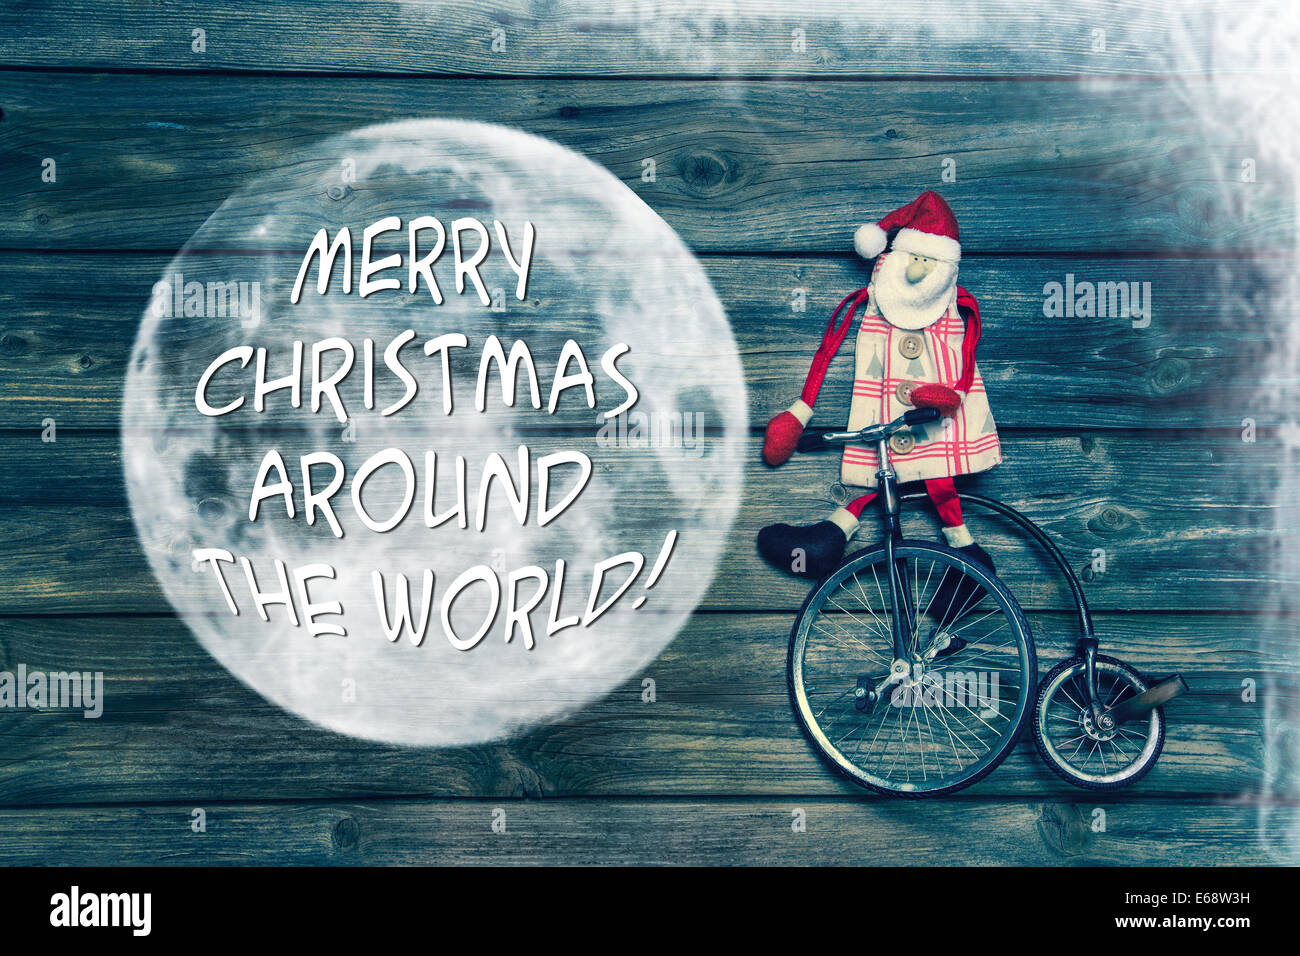 Merry christmas around the world - greeting card with english text ...